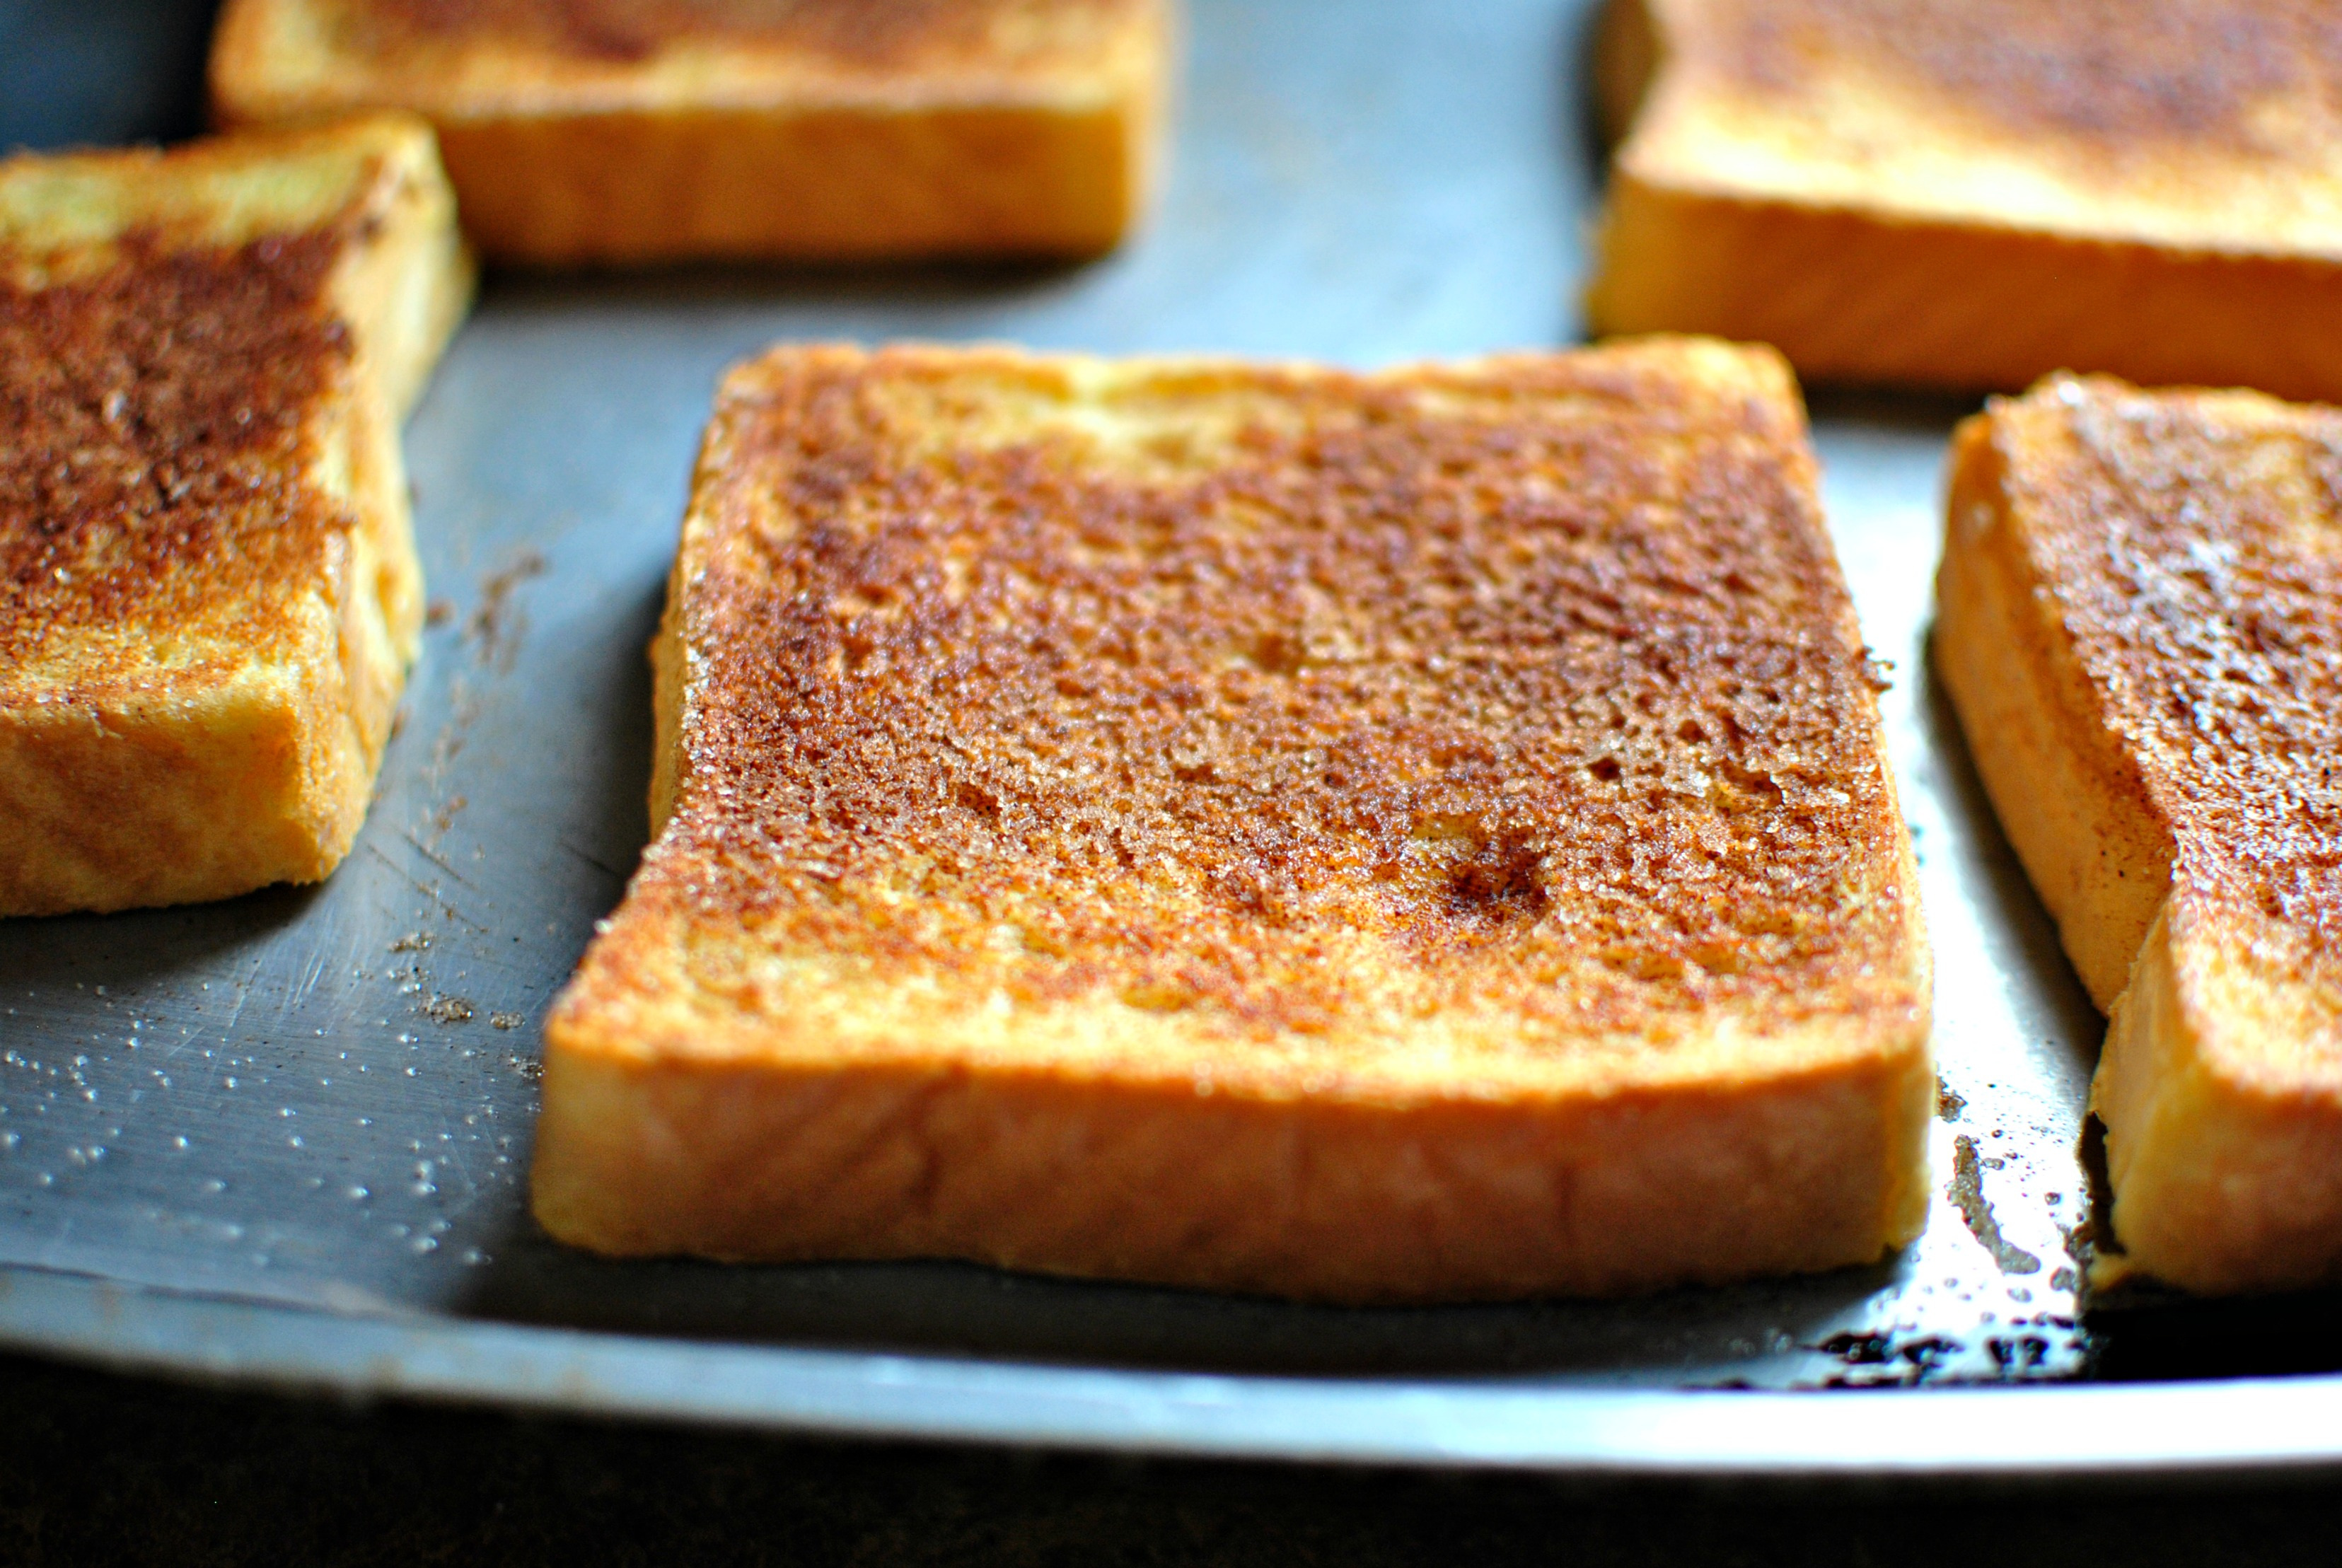 Simply Scratch Cinnamon Sugar Crusted French Toast Simply Scratch